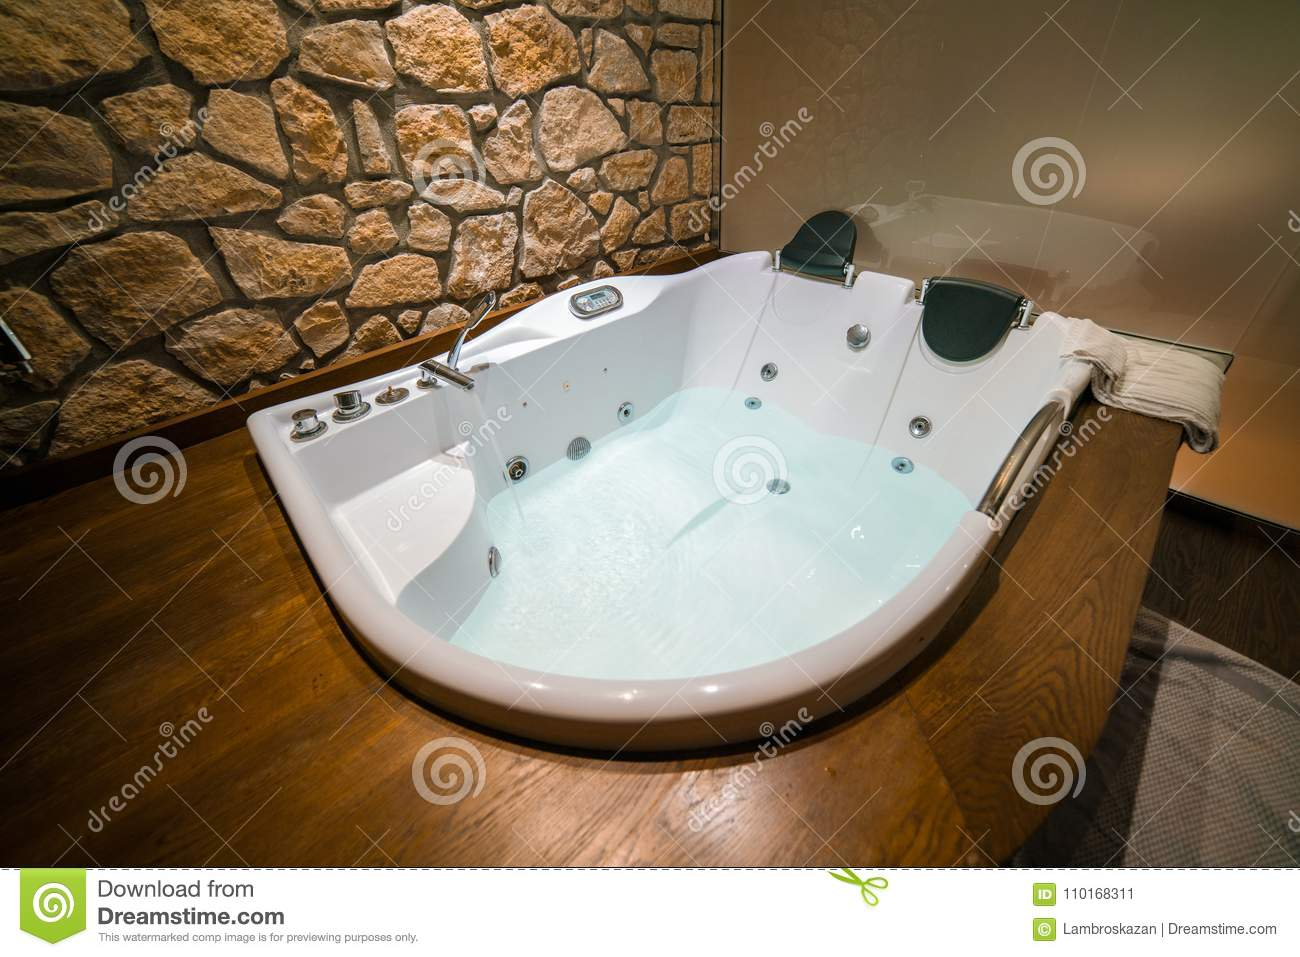 Hydrotherapy Jacuzzi Bath, Getting Ready Stock Image - Image of care ...